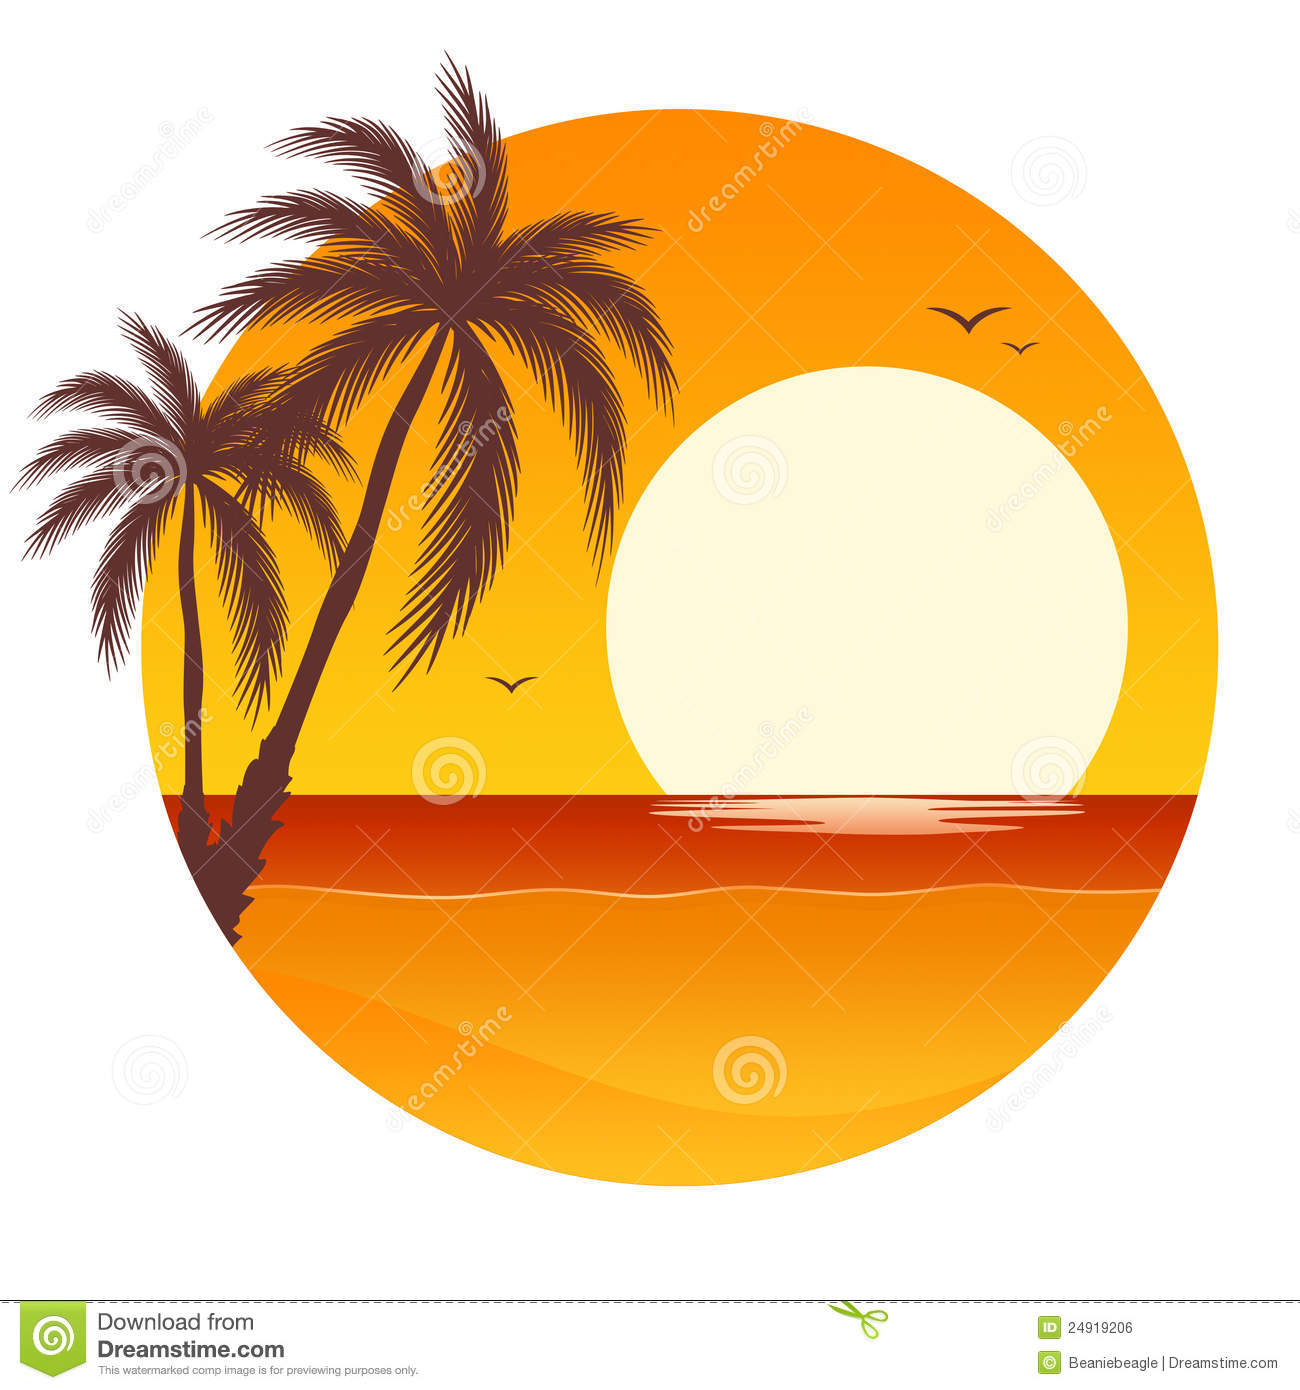 sunset with palm trees stock vector illustration of drawing 24919206 rh dreamstime com palm tree sunset clipart free Sunset Pictures Free